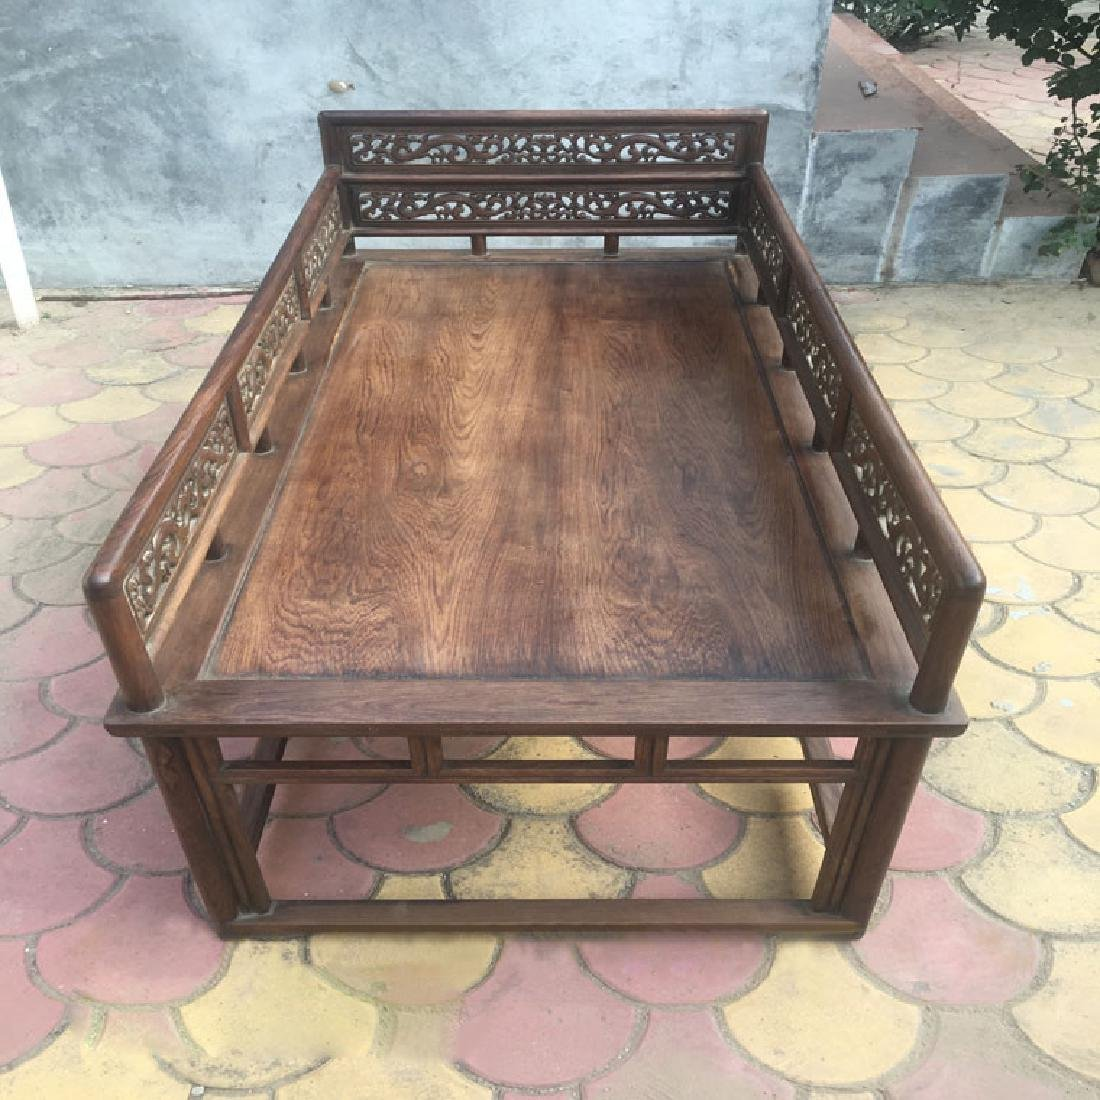 CHINESE QING DYNASTY HUANGHUALI LUO HAN BED SLEEPING